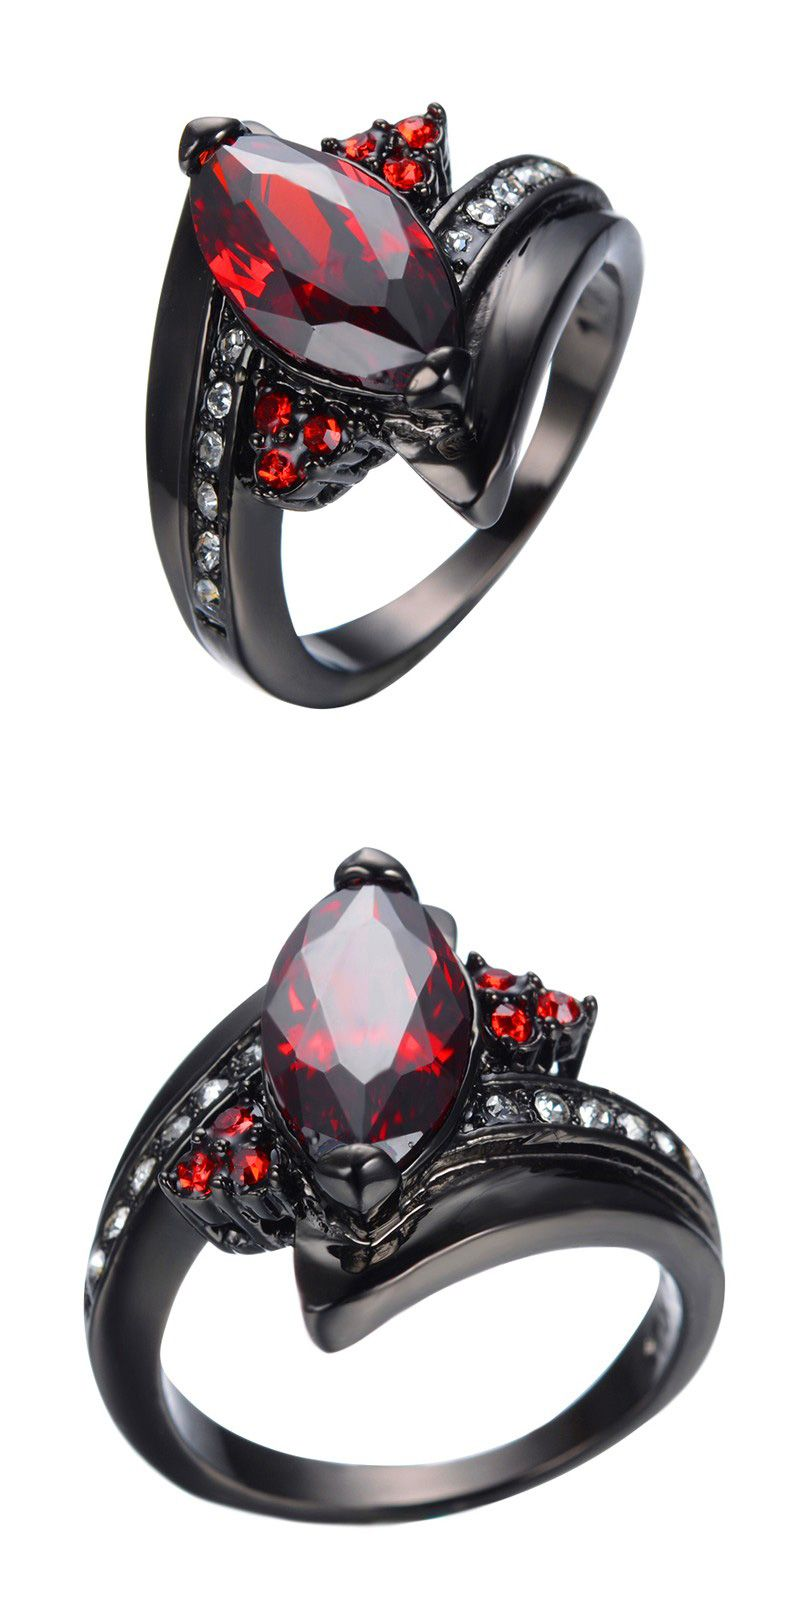 2016 Luxury Marquise Cut Ruby Ring Red Garnet Women Charming Promise  Jewelry Black Gold Filled Wedding